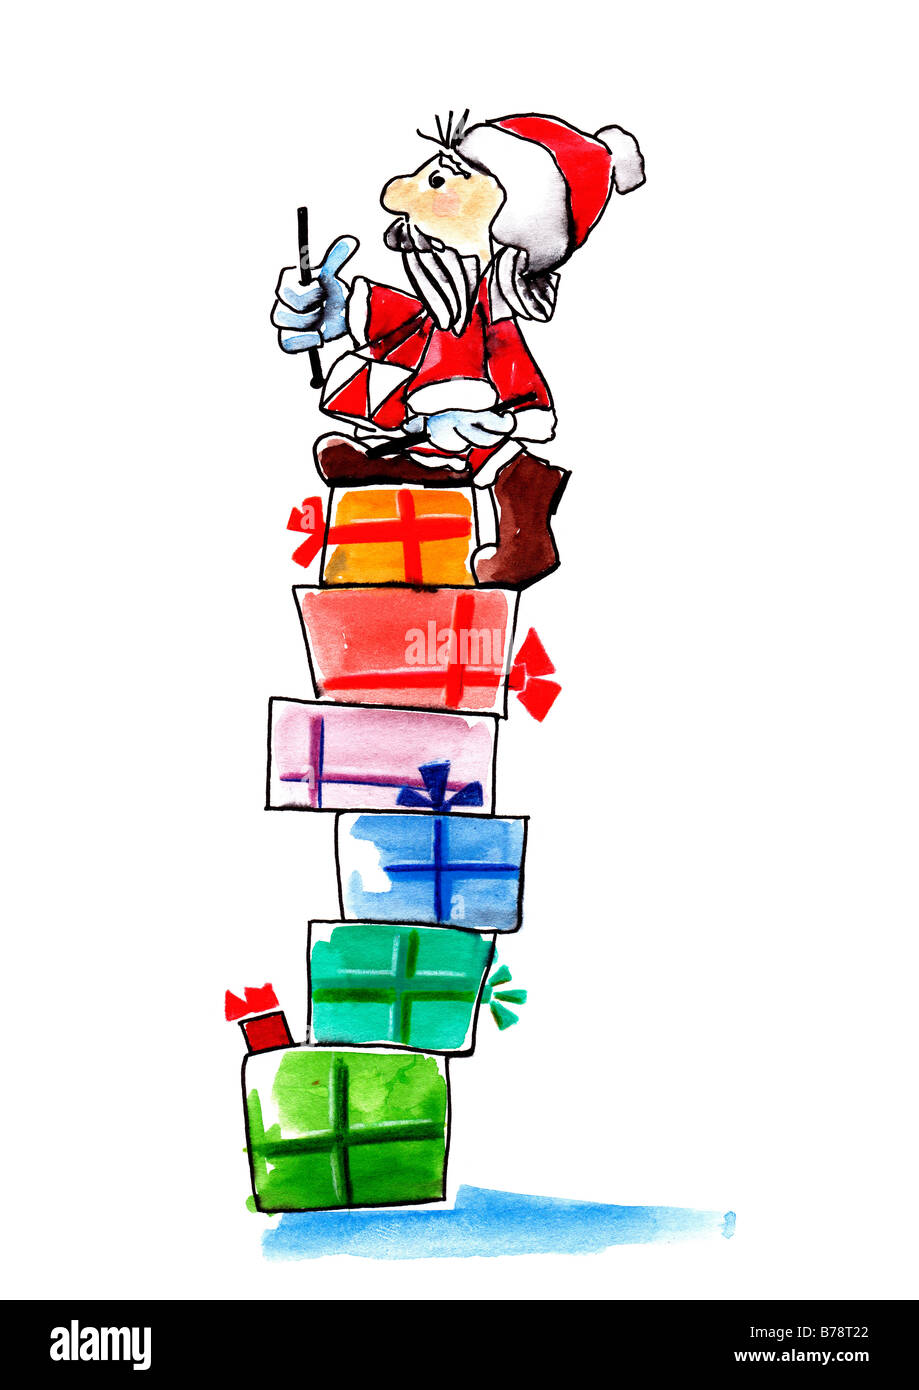 Illustration, Santa Claus with drums sitting on stack of Christmas parcels - Stock Image